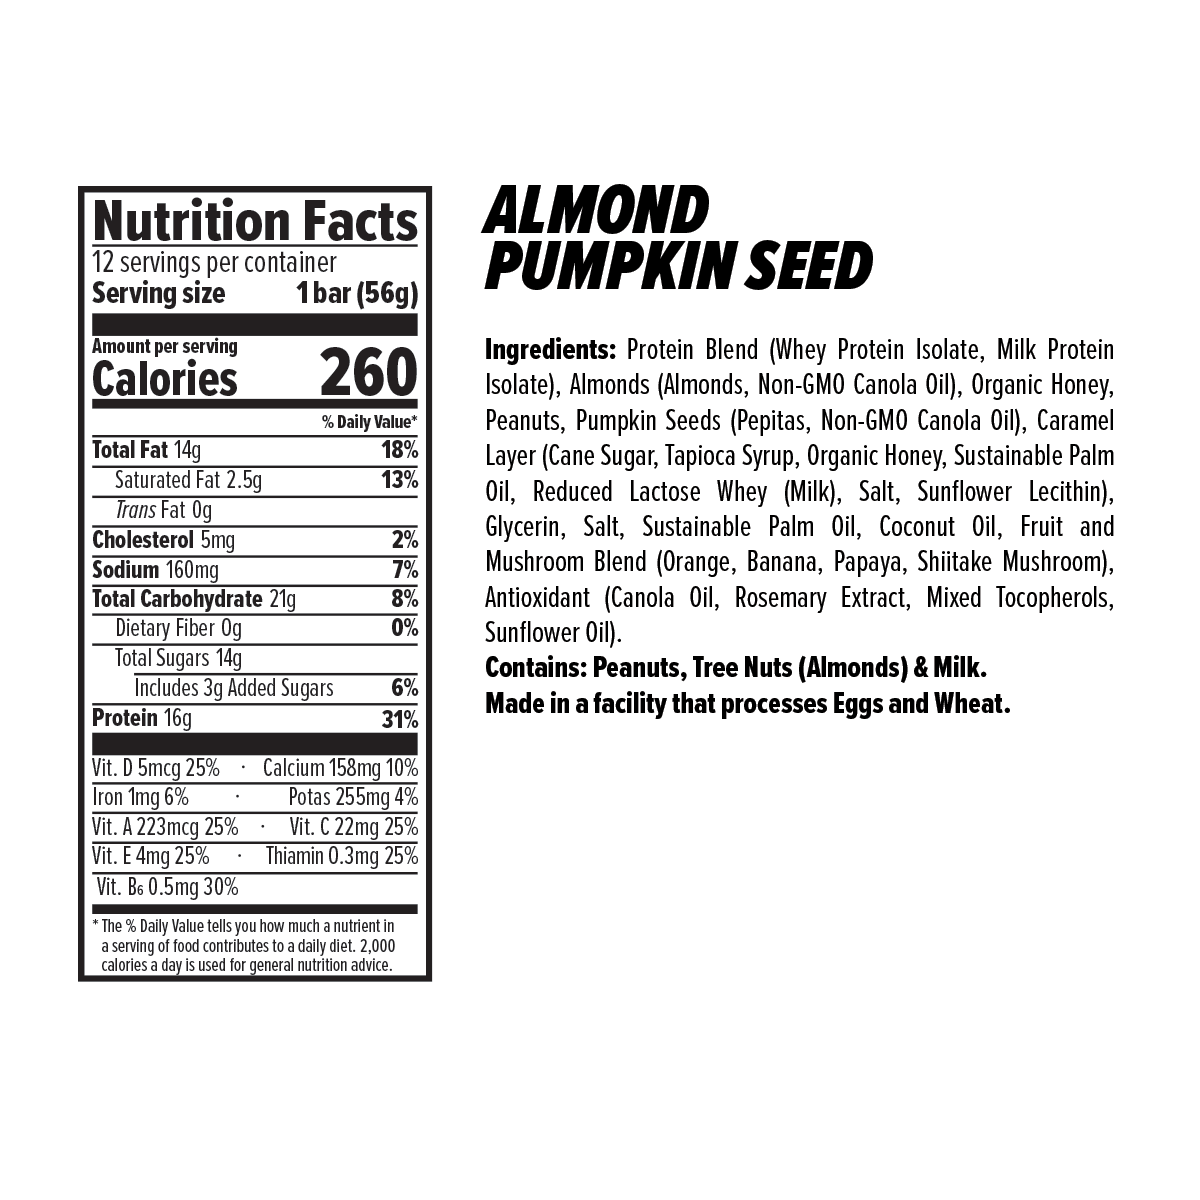 Almond Pumpkin Nut and Seed Nutrition Facts